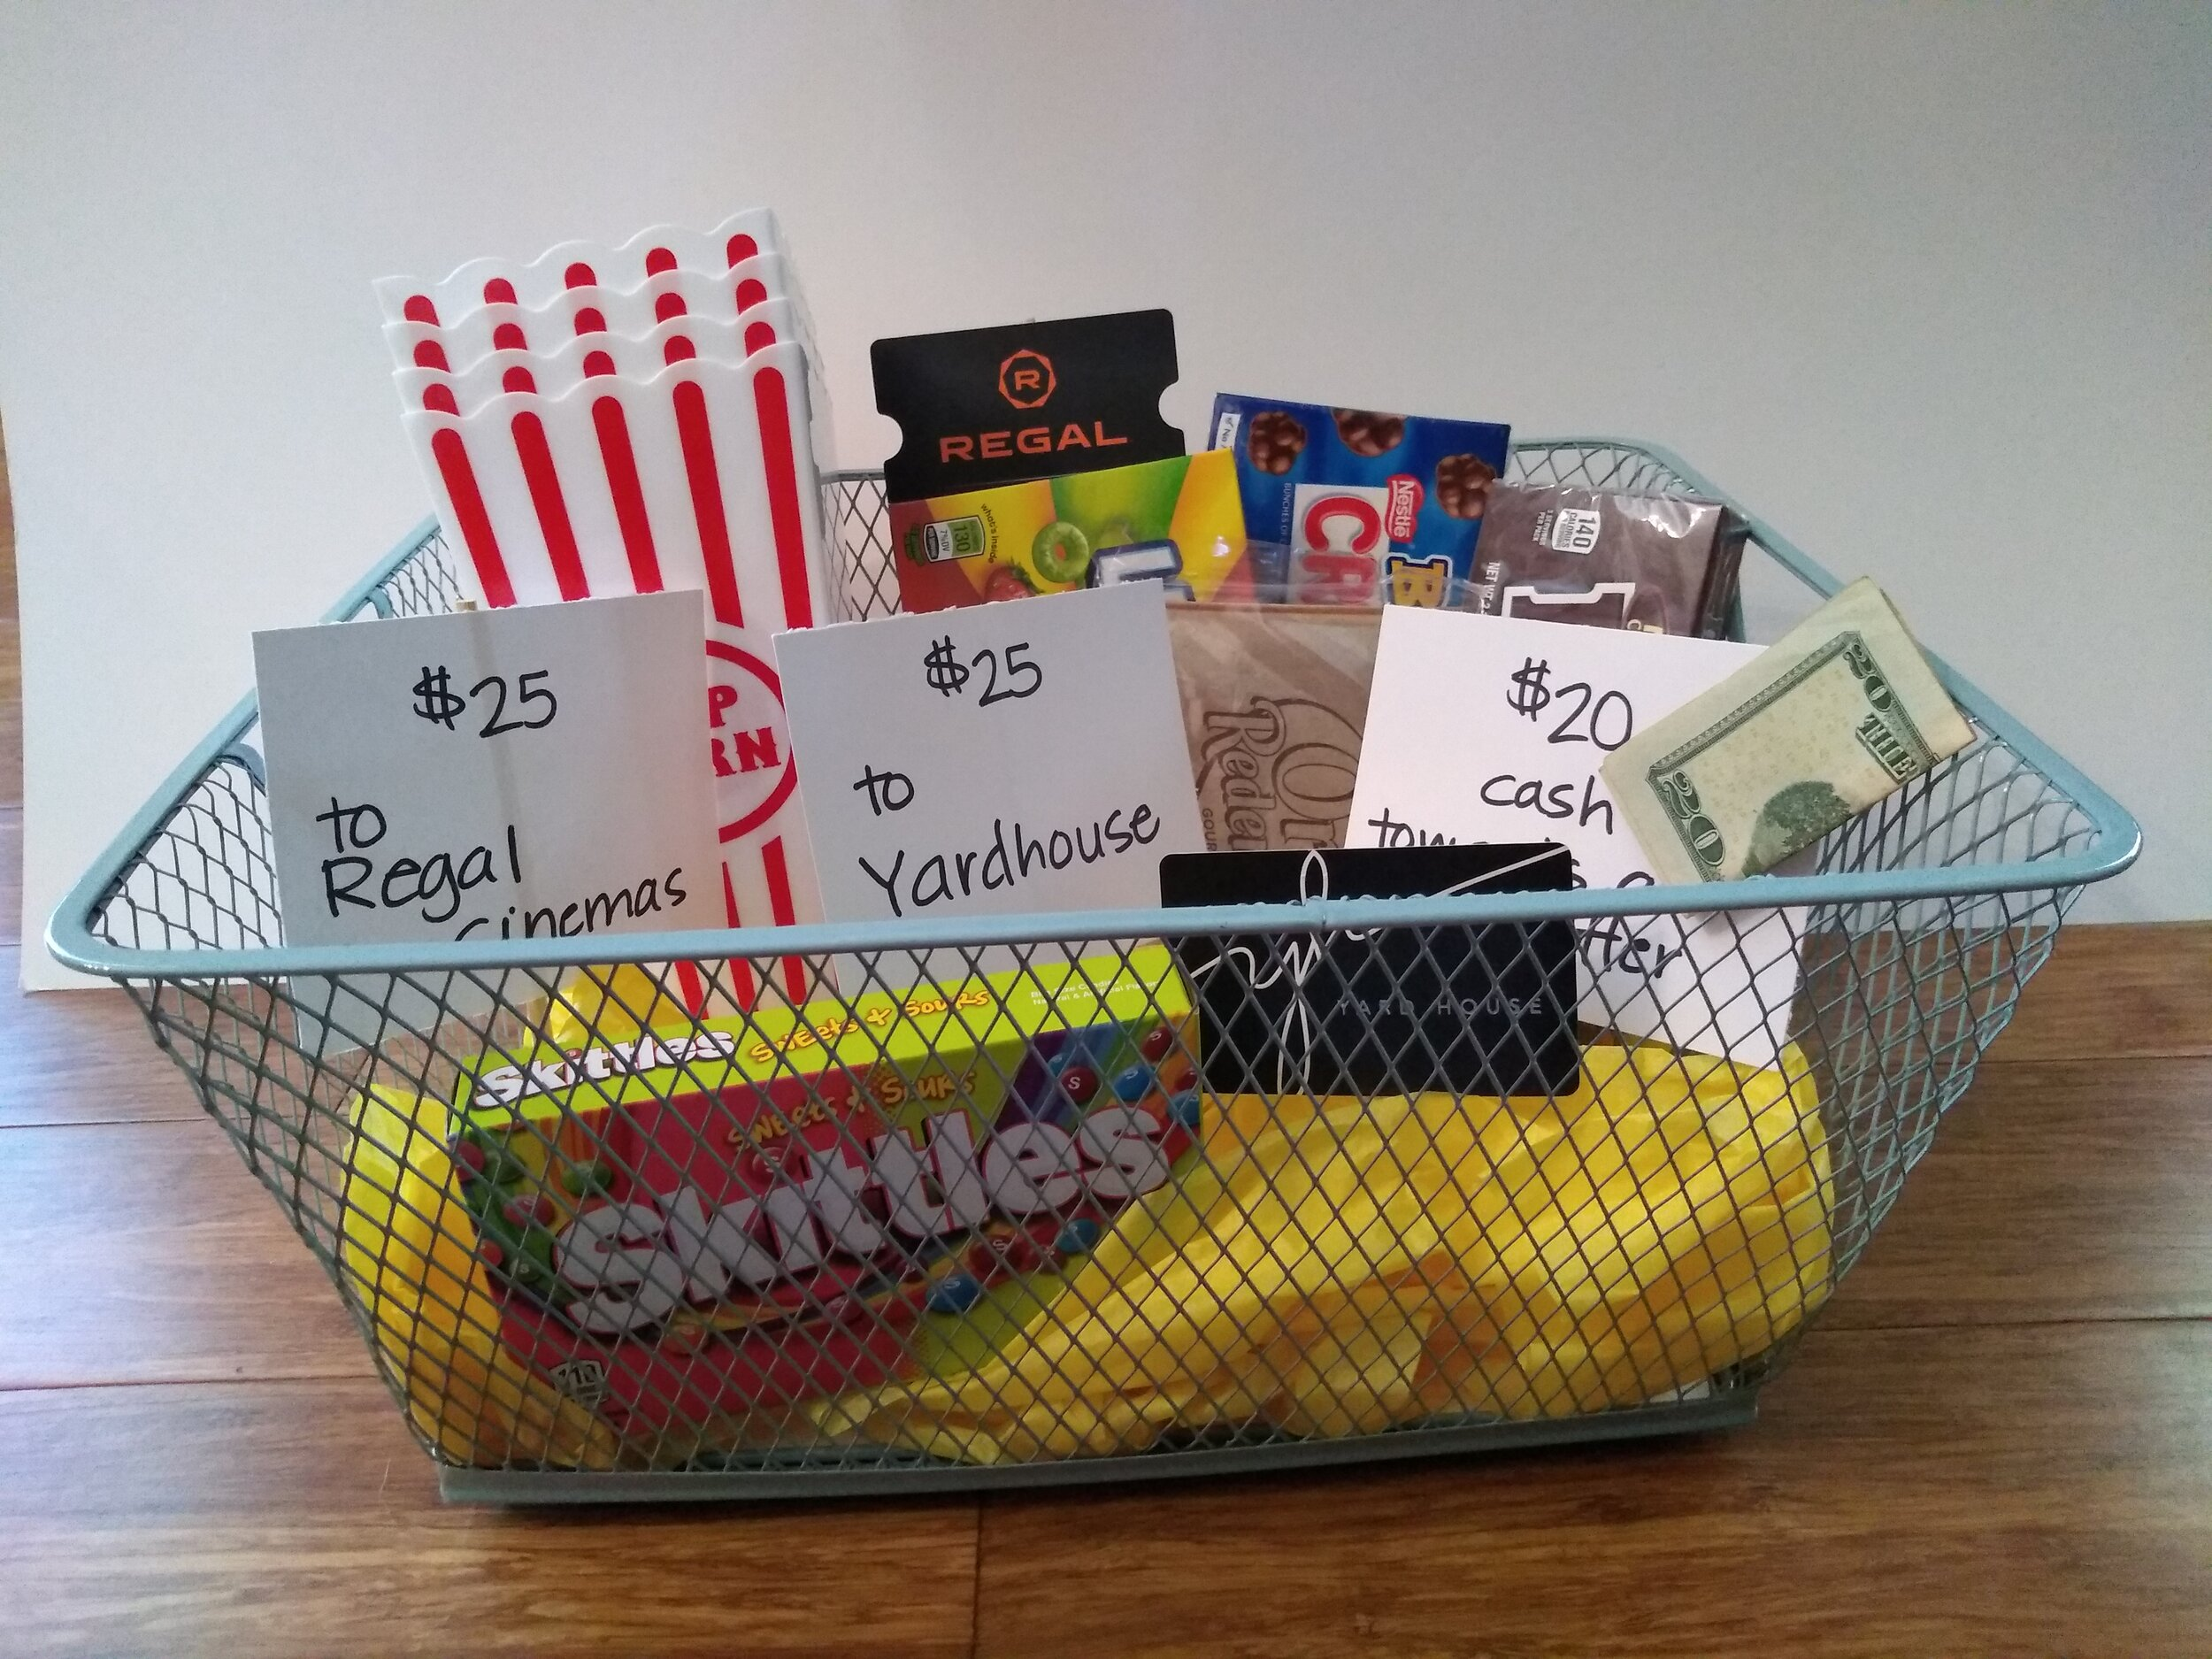 MOVIE NIGHT OUT   This basket is sure to please the parents and the kids! Parents - you can start your night off with drinks and dinner at Yard House. Walk over to Regal Cinemas and check out the latest and greatest movie that can't be beat on the big screen. And while you do that, your kids can enjoy their own movie night at home with a babysitter. We've got popcorn and candy for them - and even $20 towards the sitter!  DONOR: 5th Grade Classes VALUE: $84